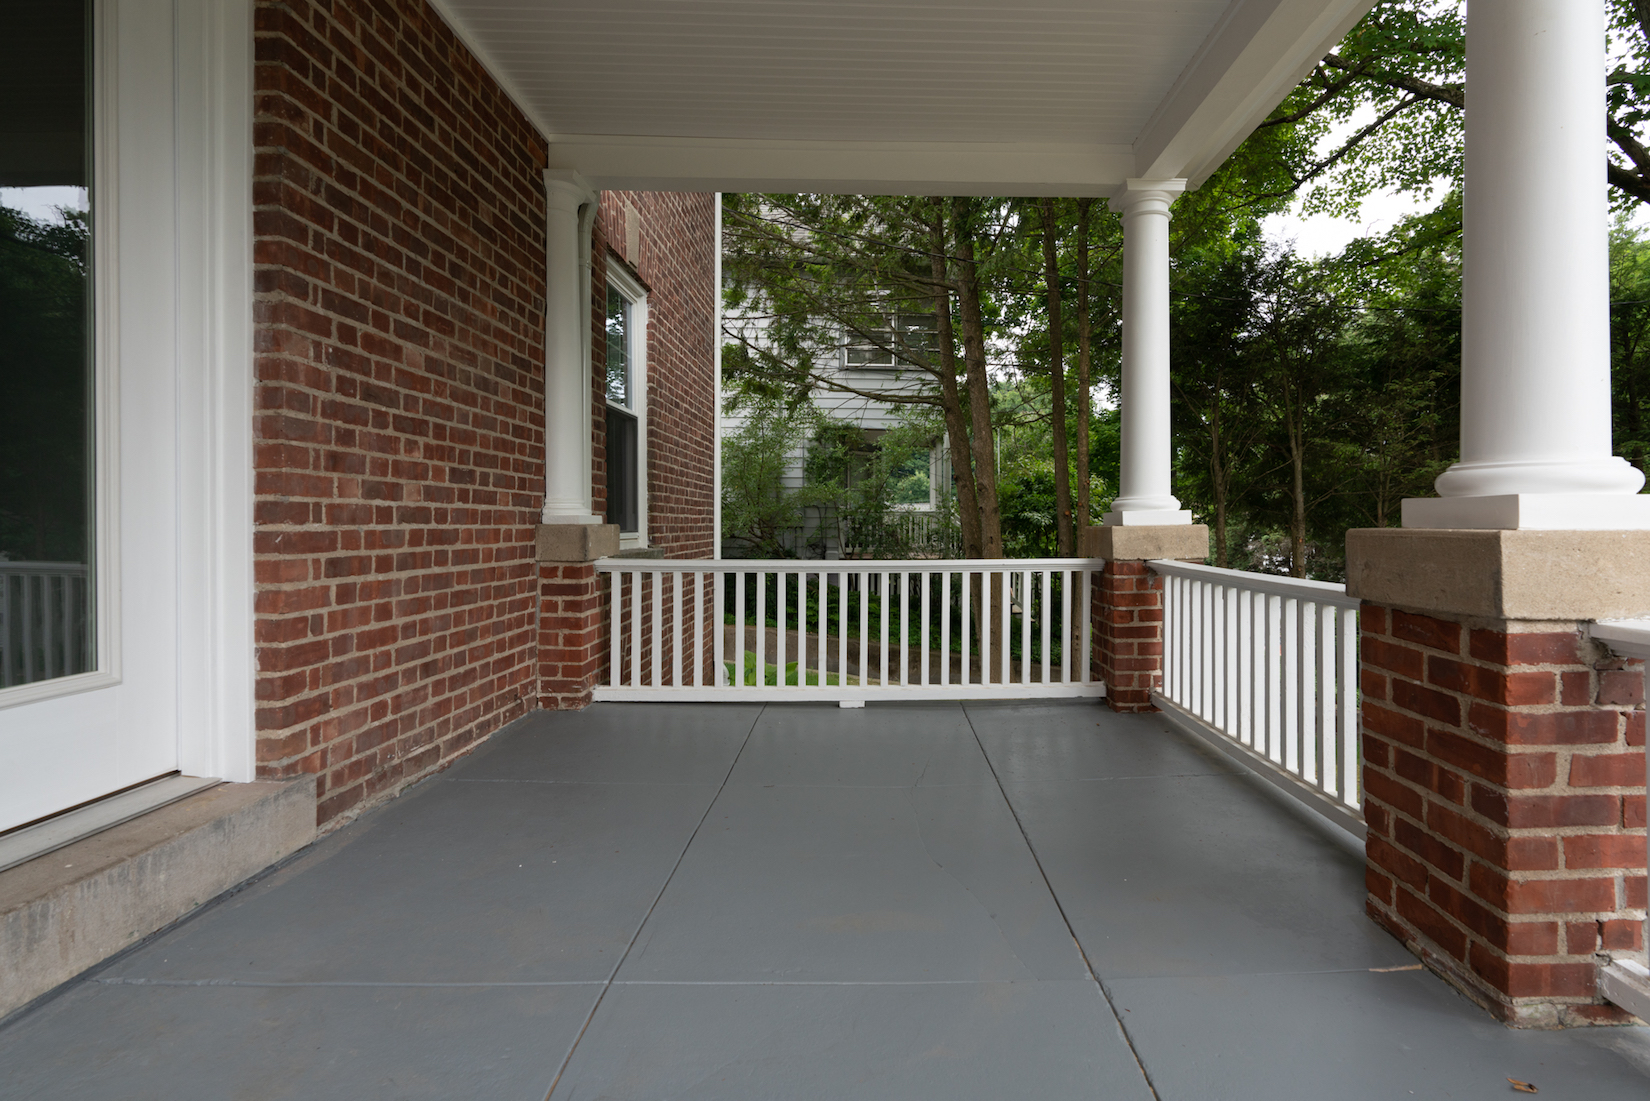 26 Union St Porch